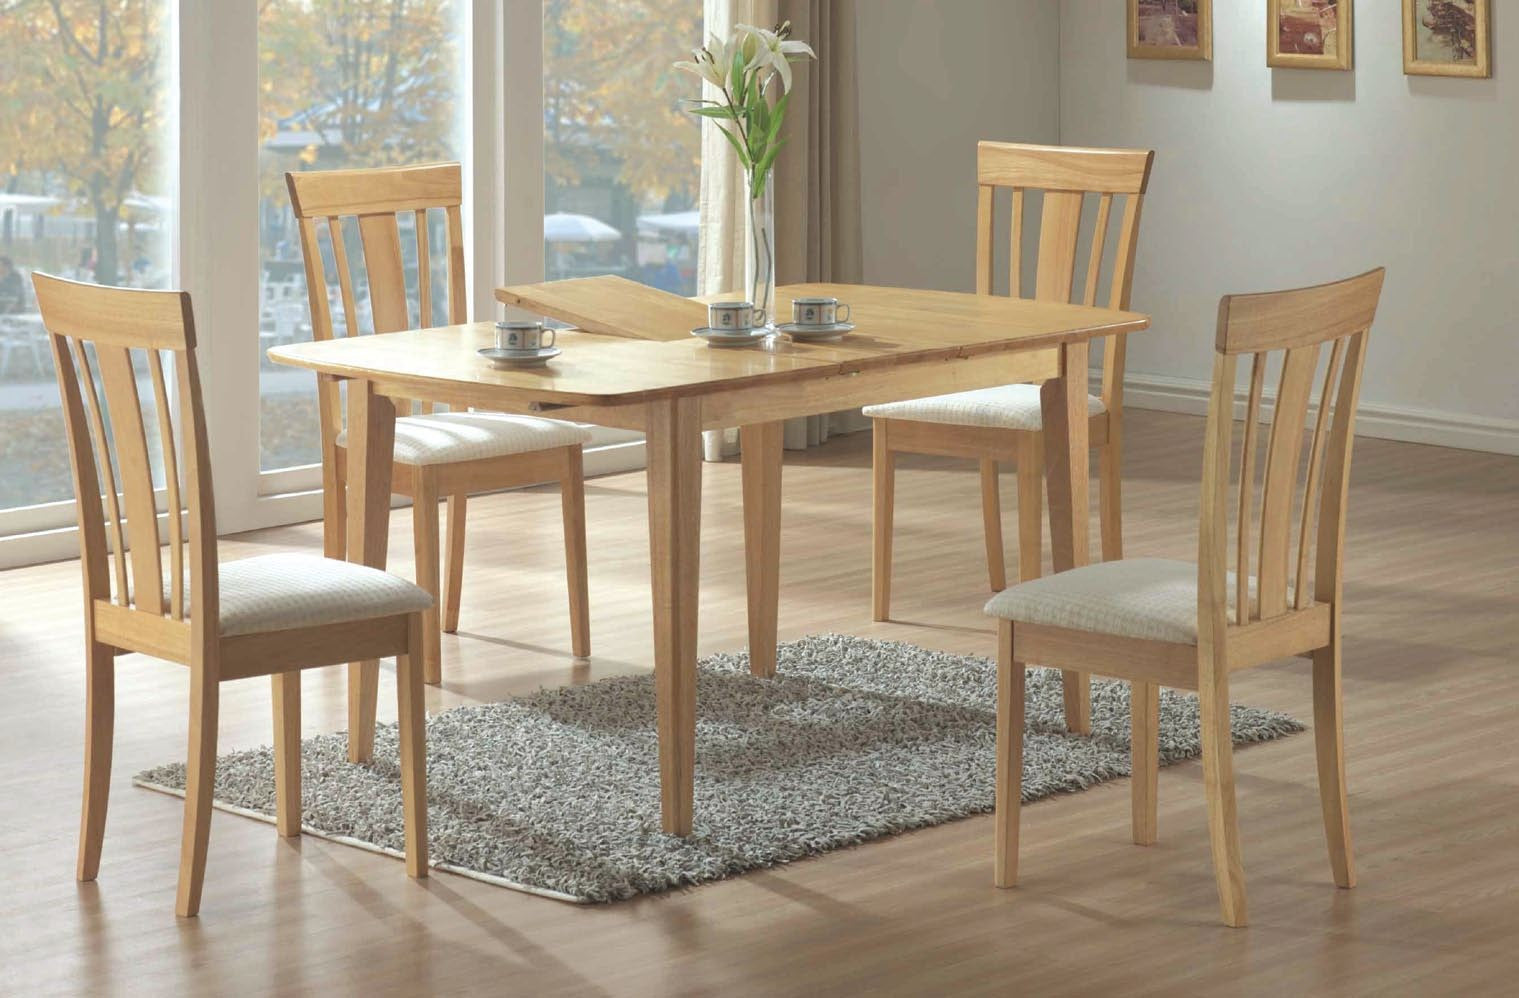 MAPLE 36X 60 DINING TABLE 12 BUTTERFLY LEAF TABLE A DINER 36X